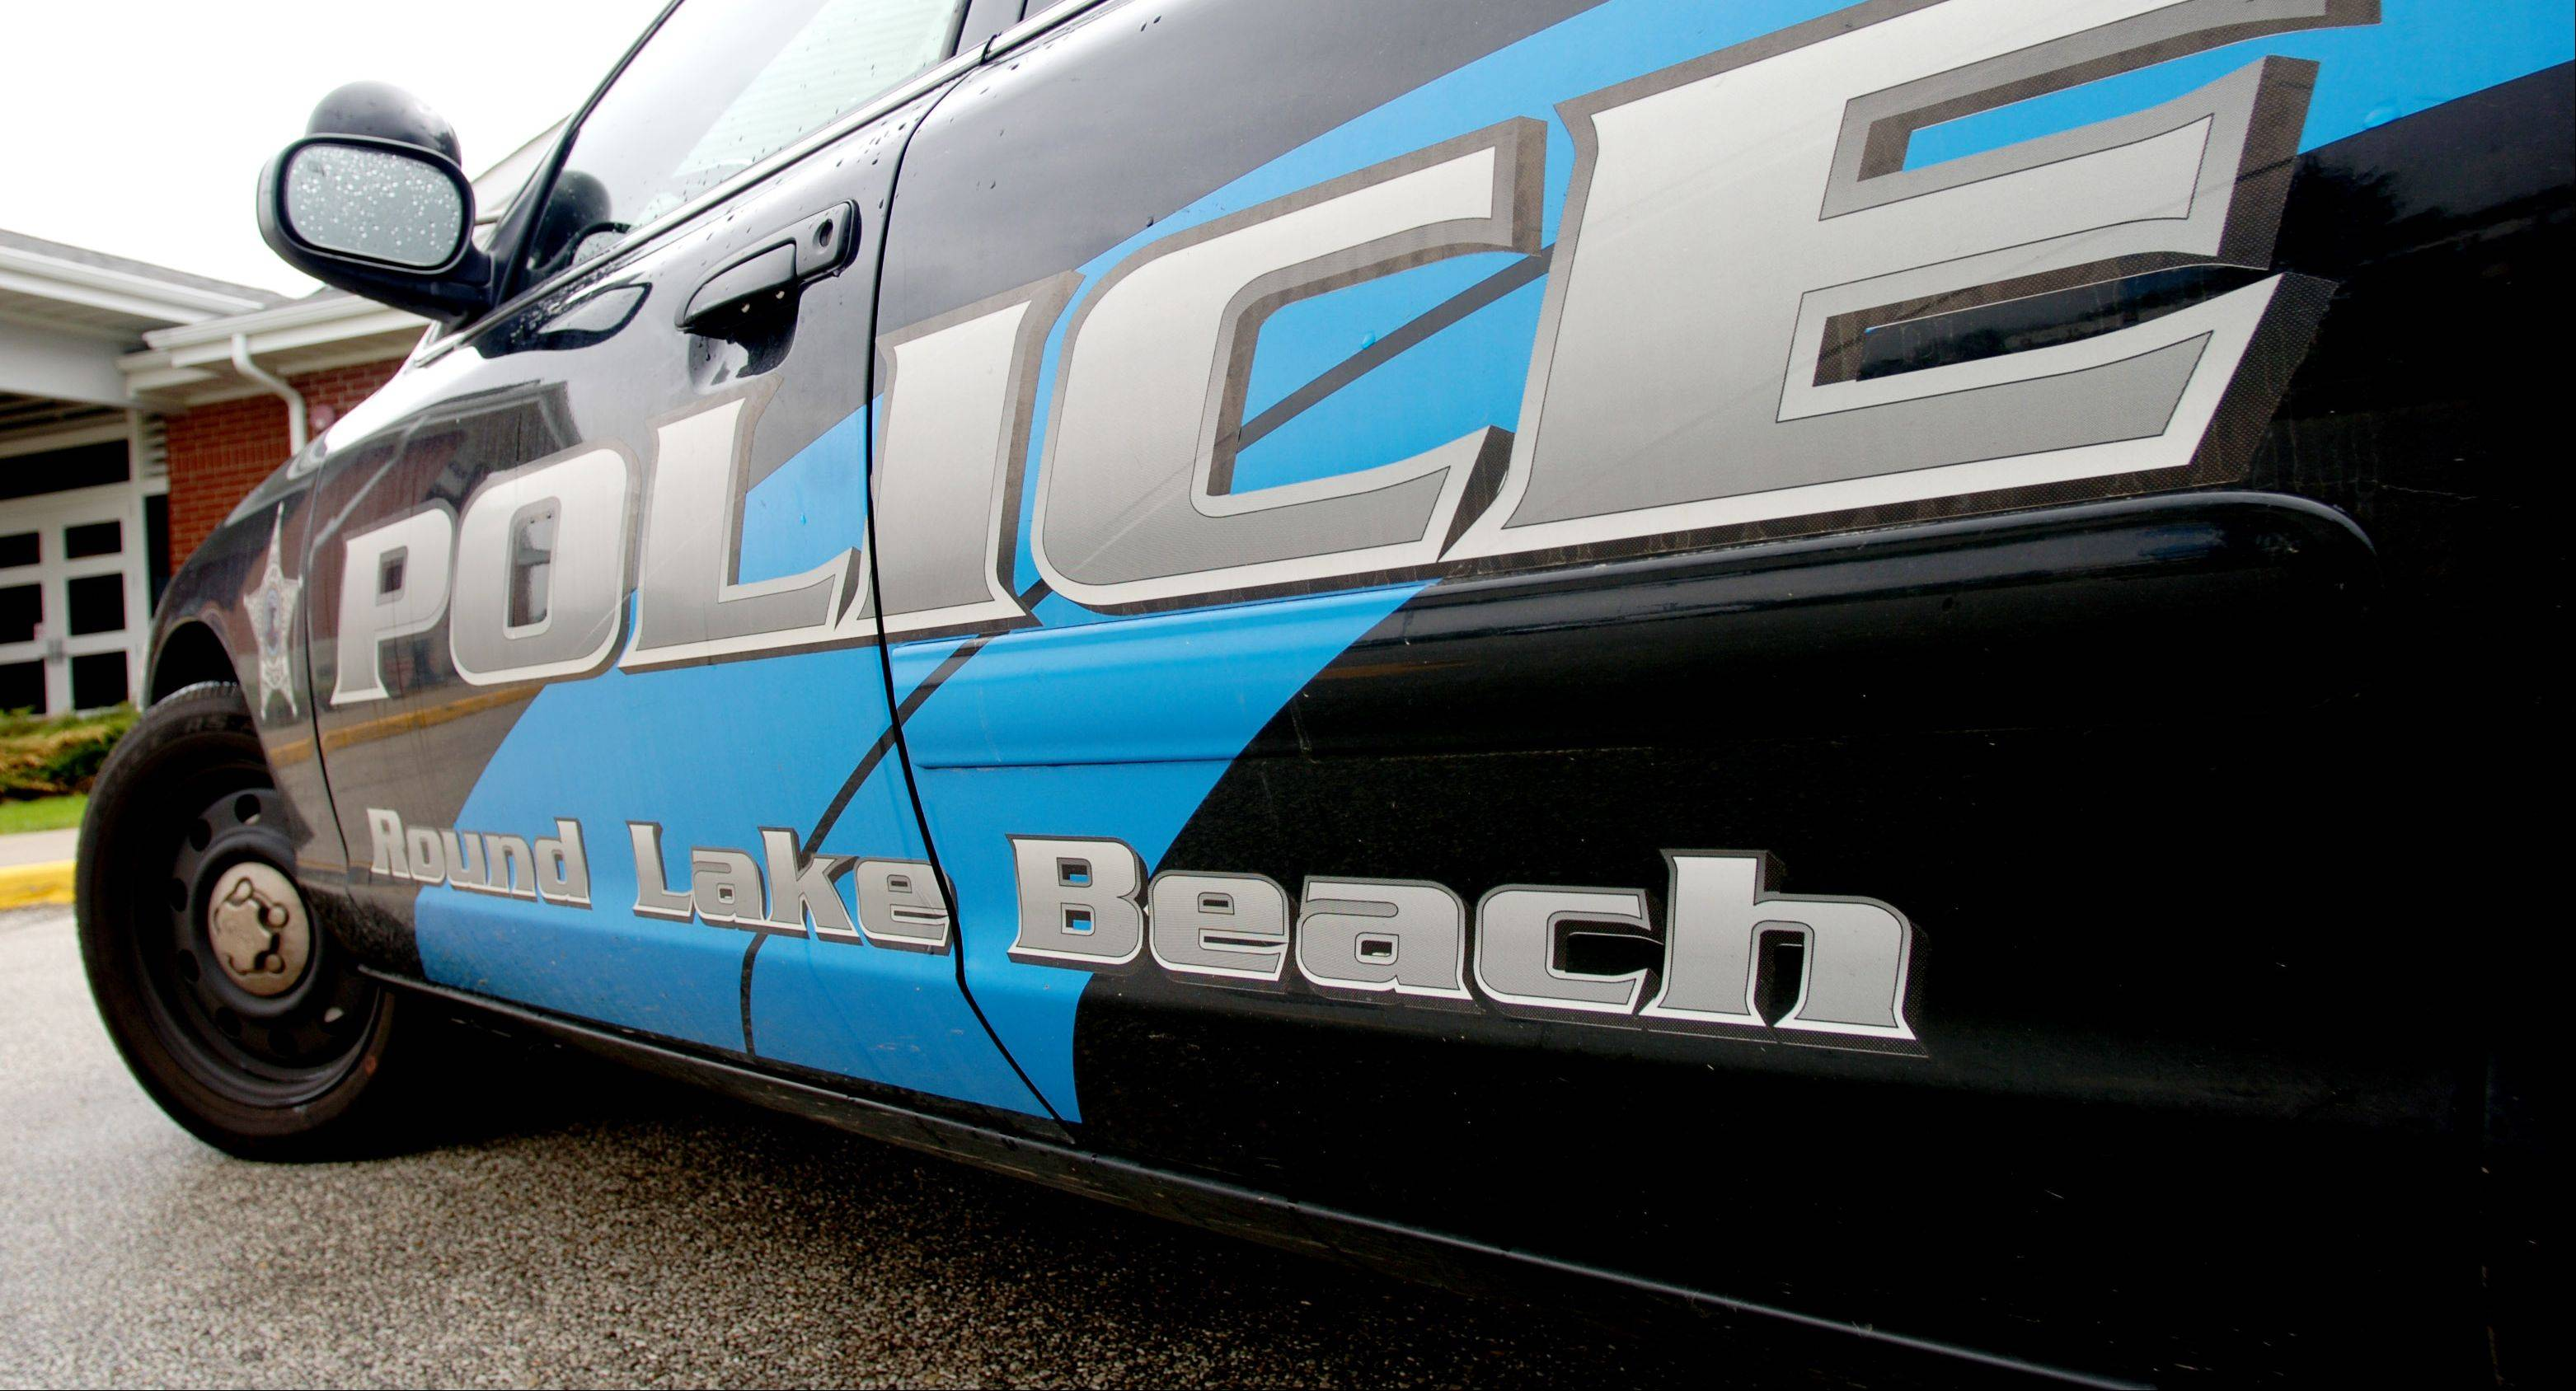 Citing state law and a legal opinion, Round Lake Beach village officials say they determined they can't end former police officer Leroy Kuffel's pension, even though he was convicted of molesting a teenage girl while off duty.